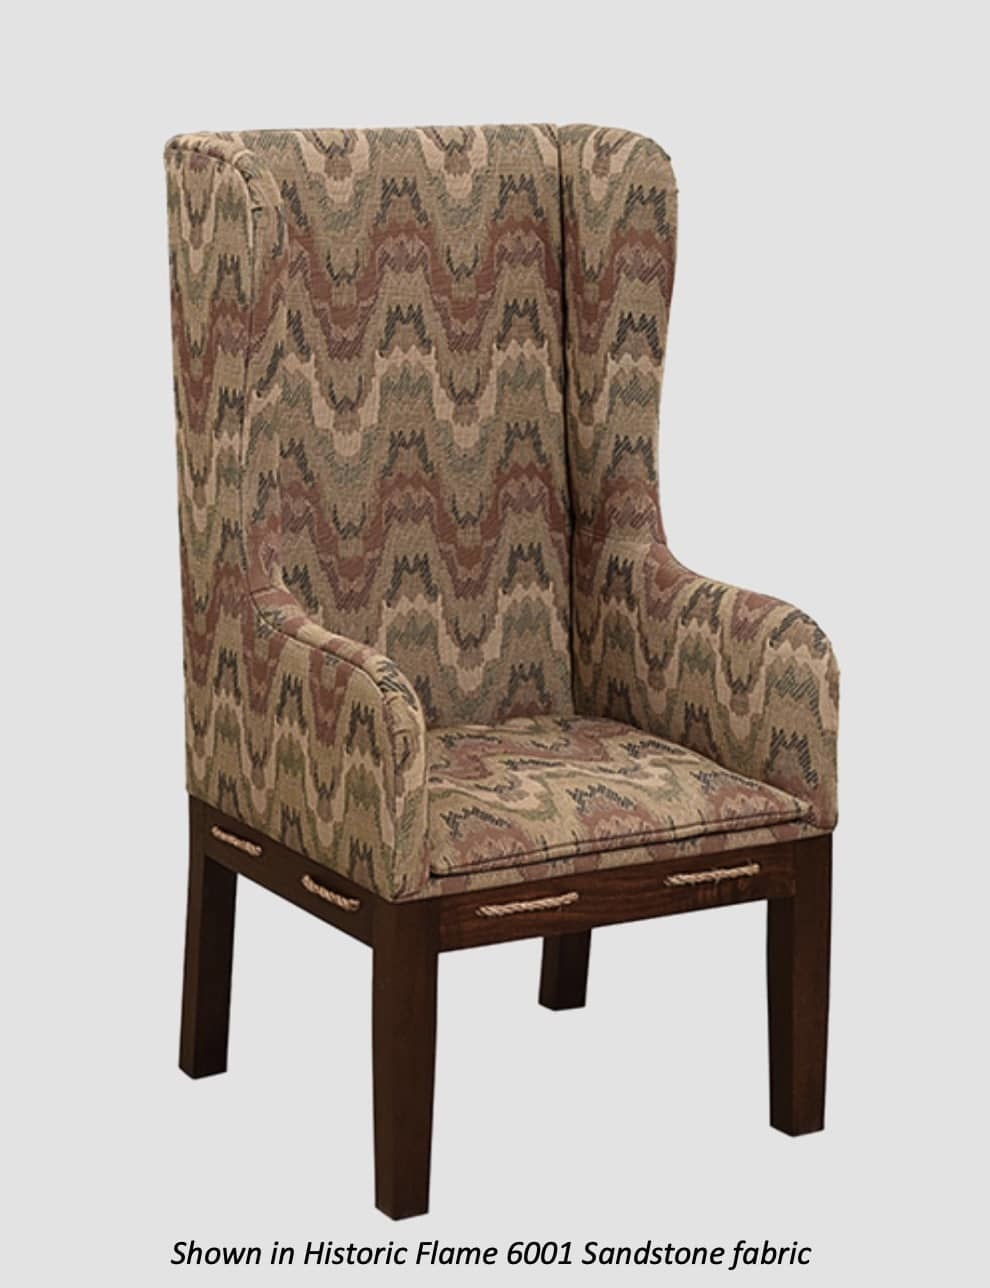 Town & Country Furnishings Westboro Chair from the American Primitive Collection